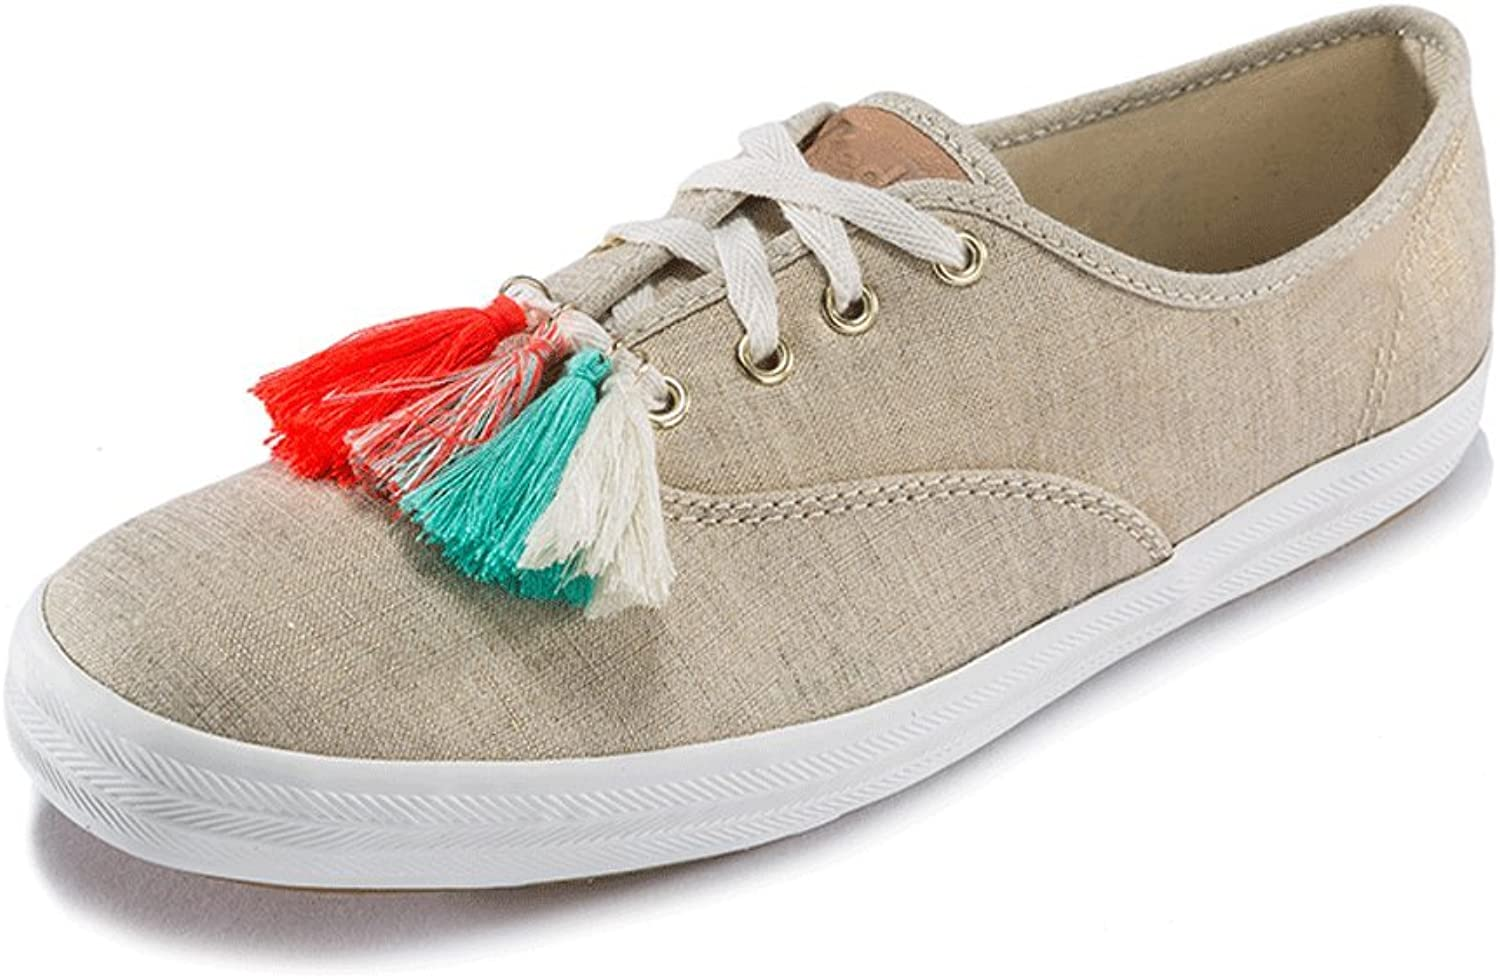 LIUXUEPING Summer Female Flat shoes Personality Street Canvas shoes Casual Tassel shoes (color   Brown, Size   37)